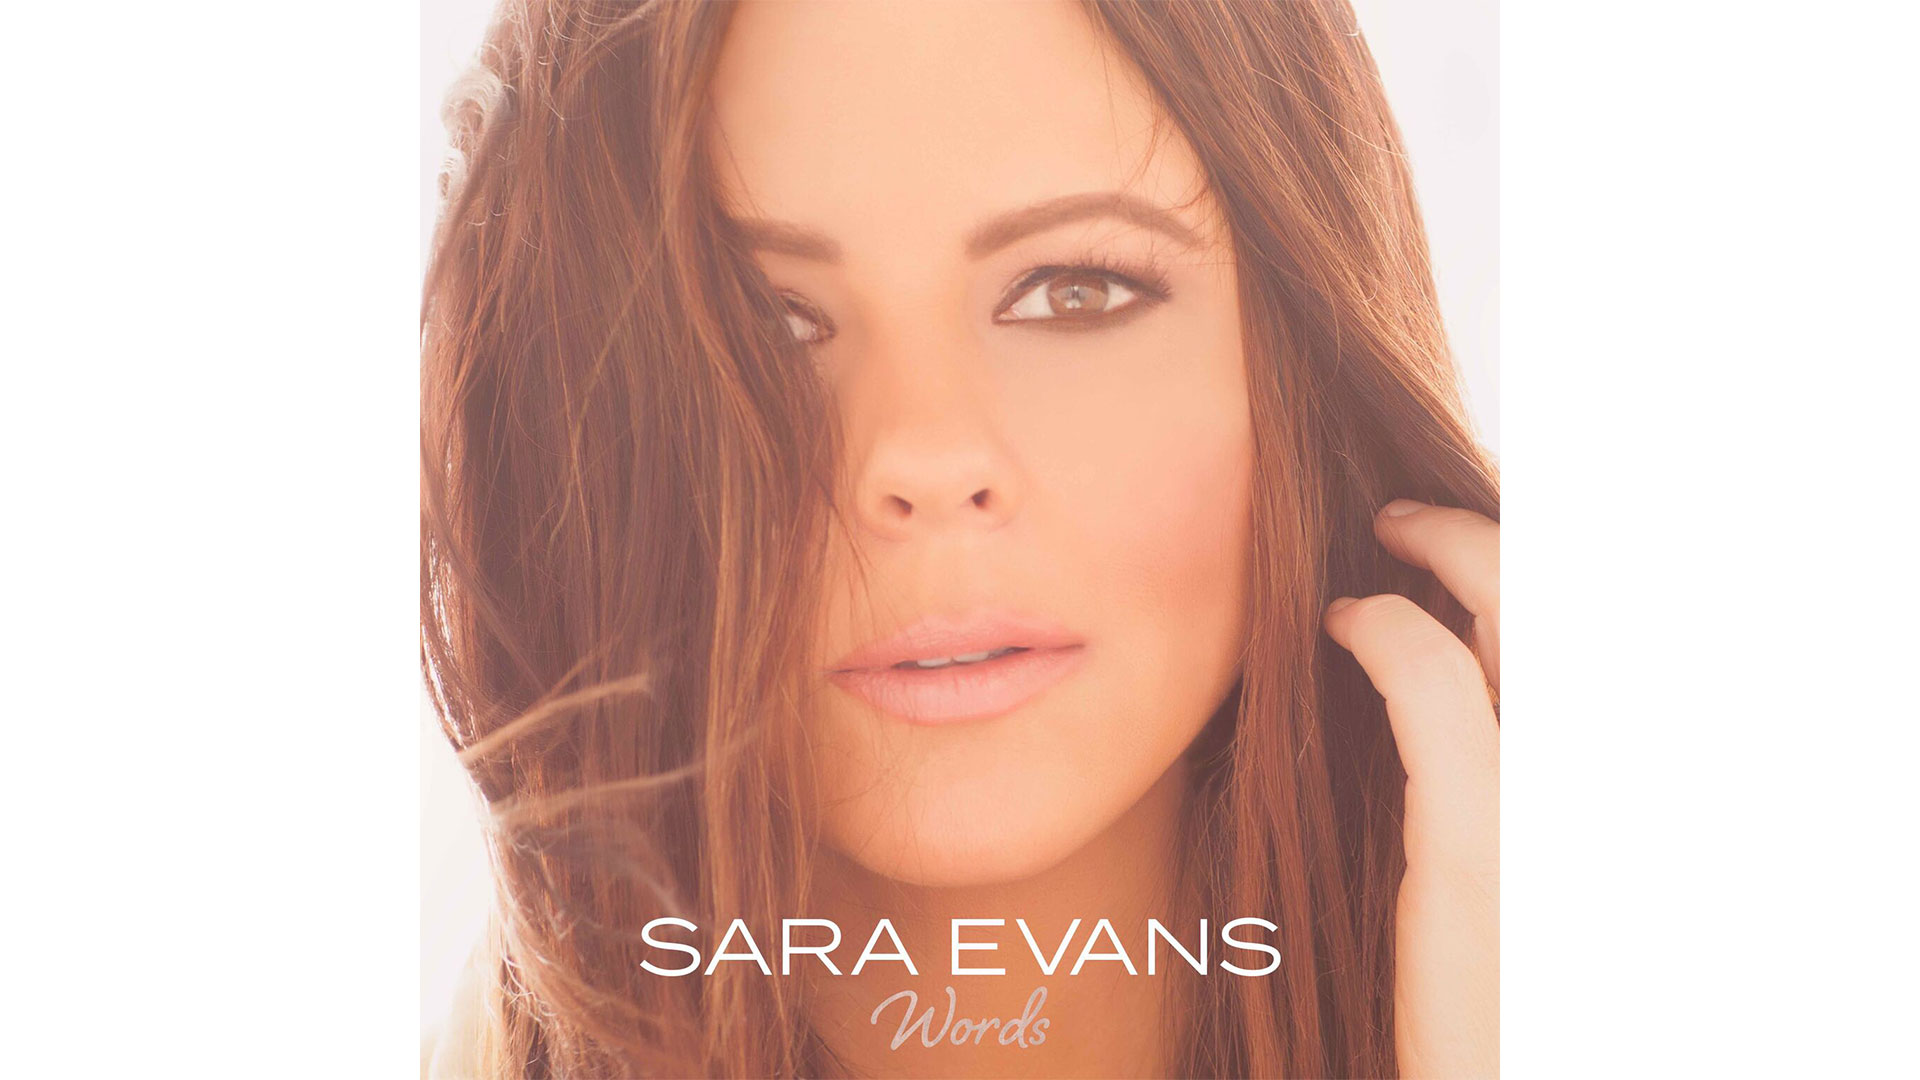 Sara Evans Words Cover Art